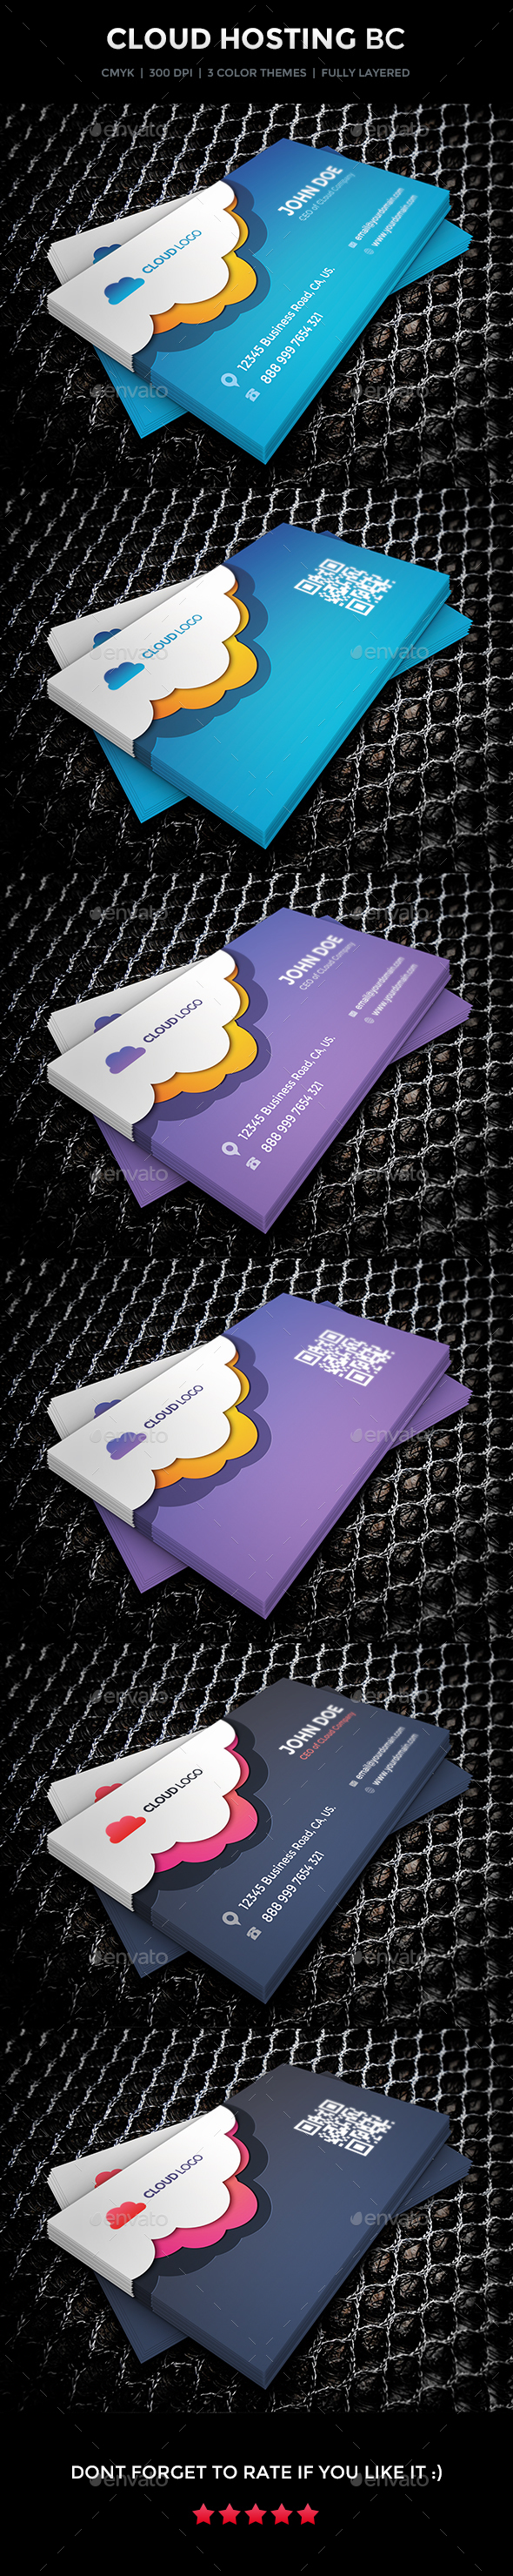 Cloud Hosting Business Card Design - Business Cards Print Templates